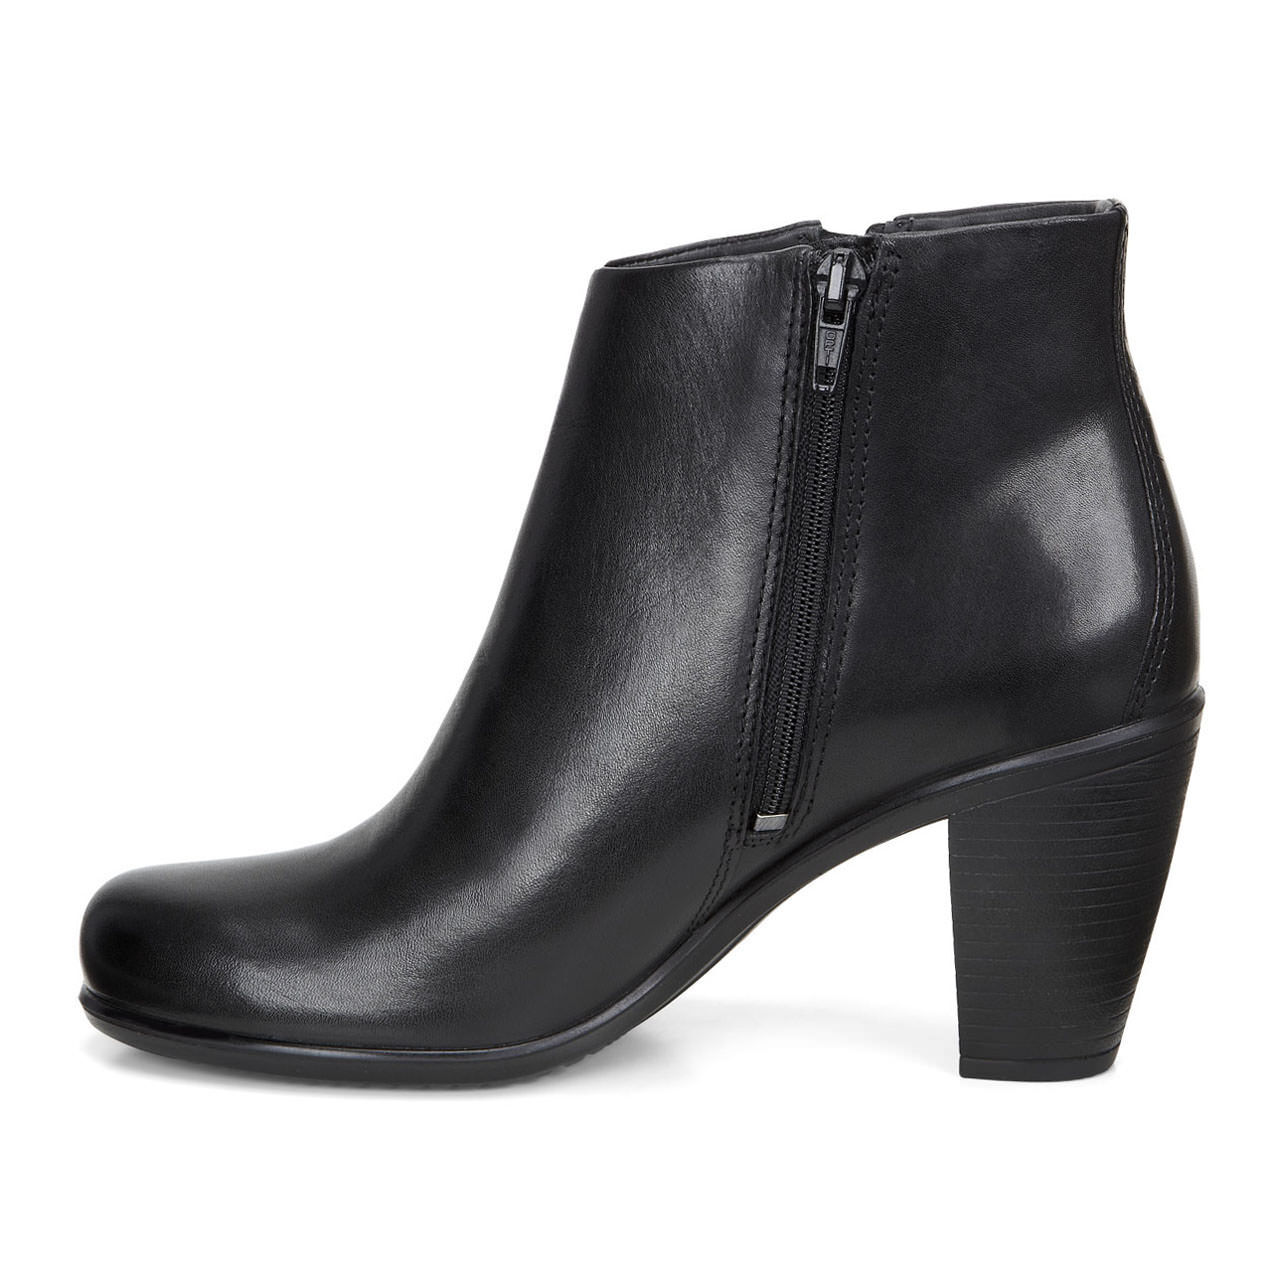 Touch 75 Ankle Bootie ECCO IF9lZZz